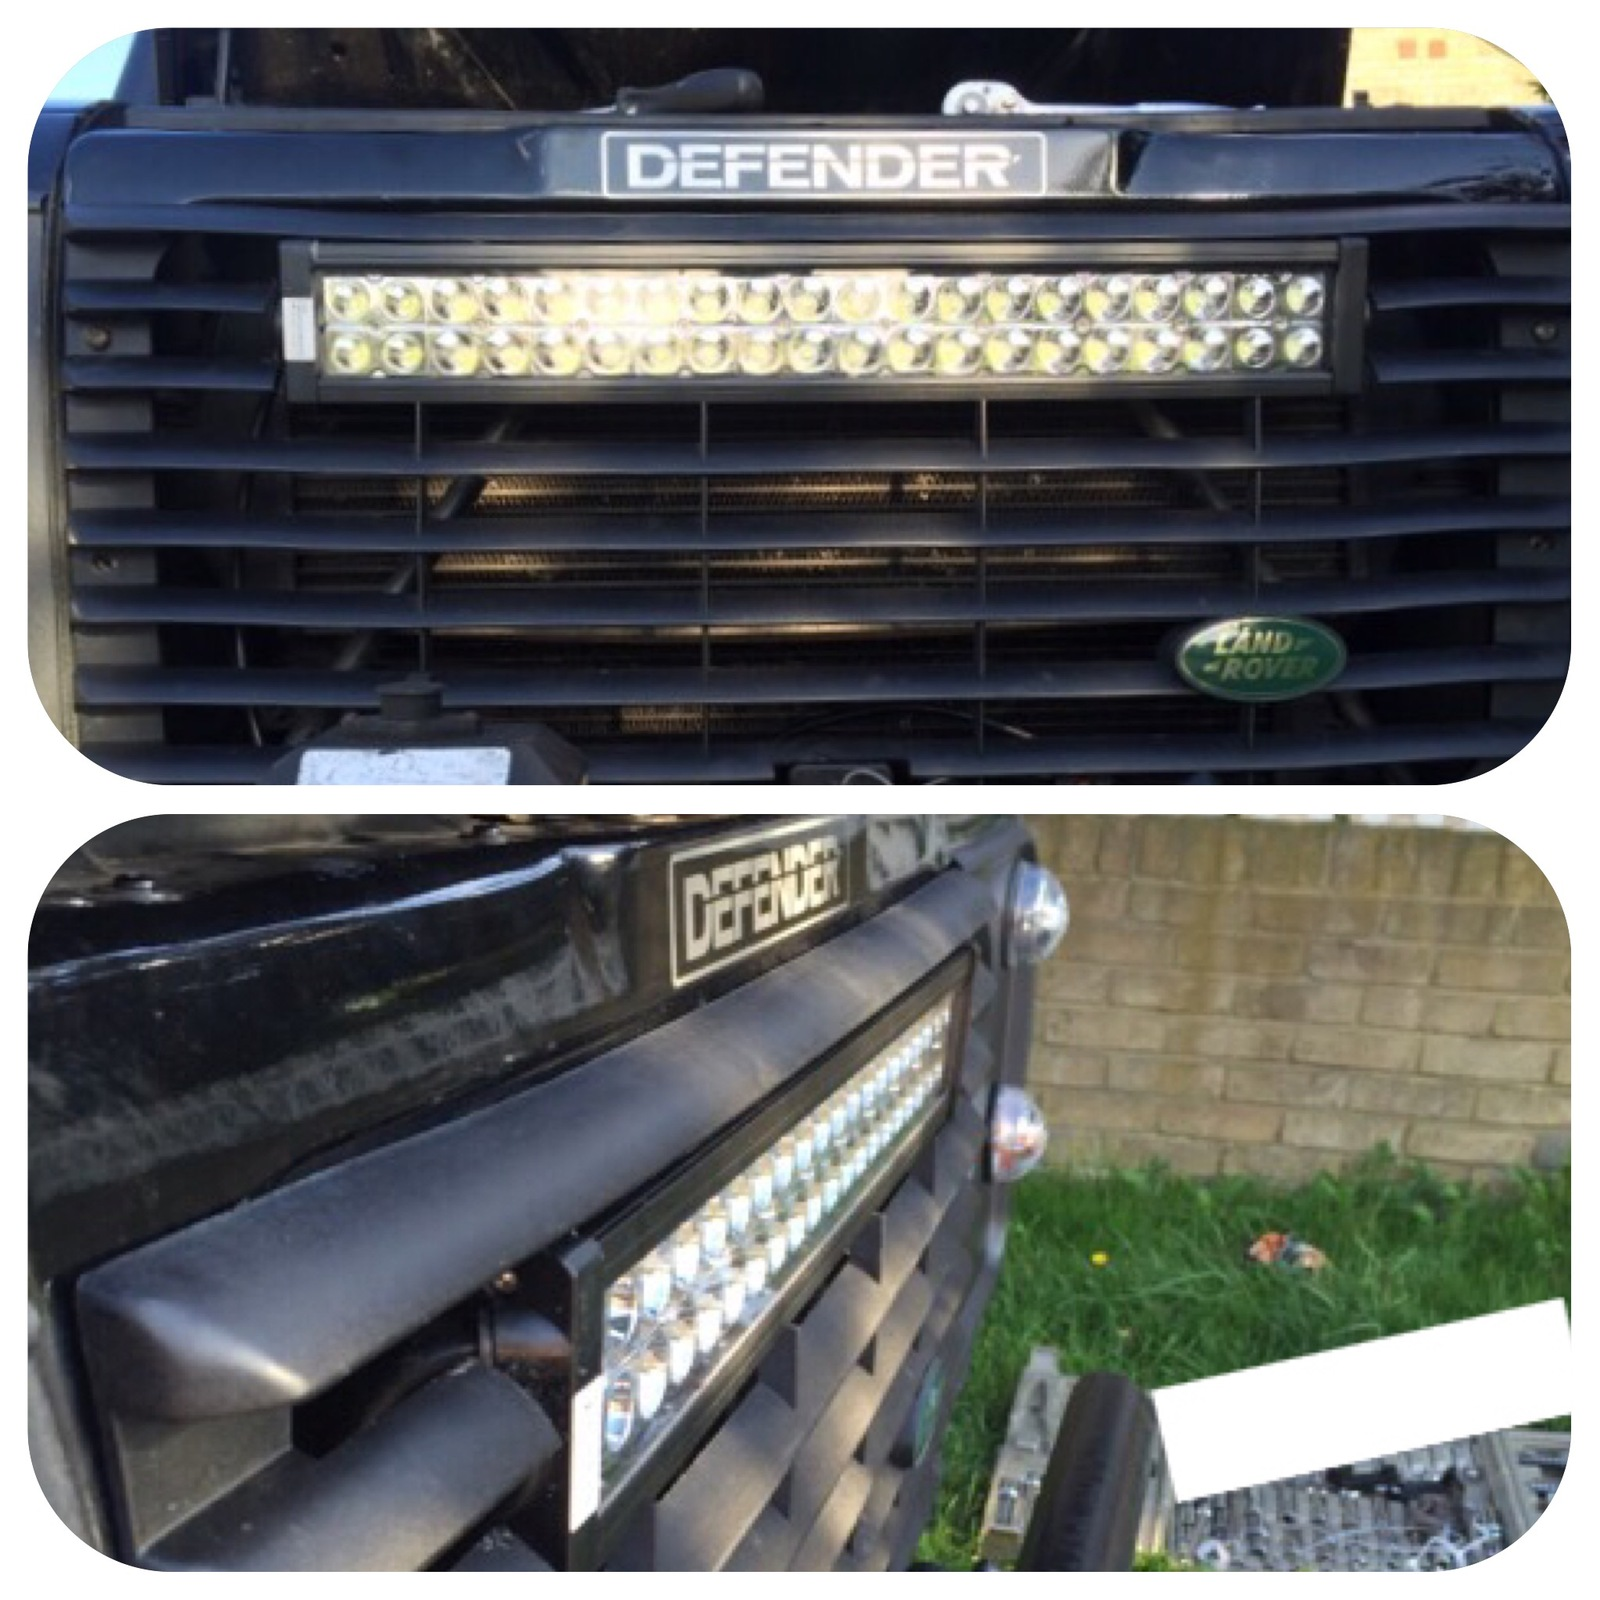 Is A Relay Needed For 120w Led Light Bar Landyzone Land Rover Forum Wiring No View Attachment 90842